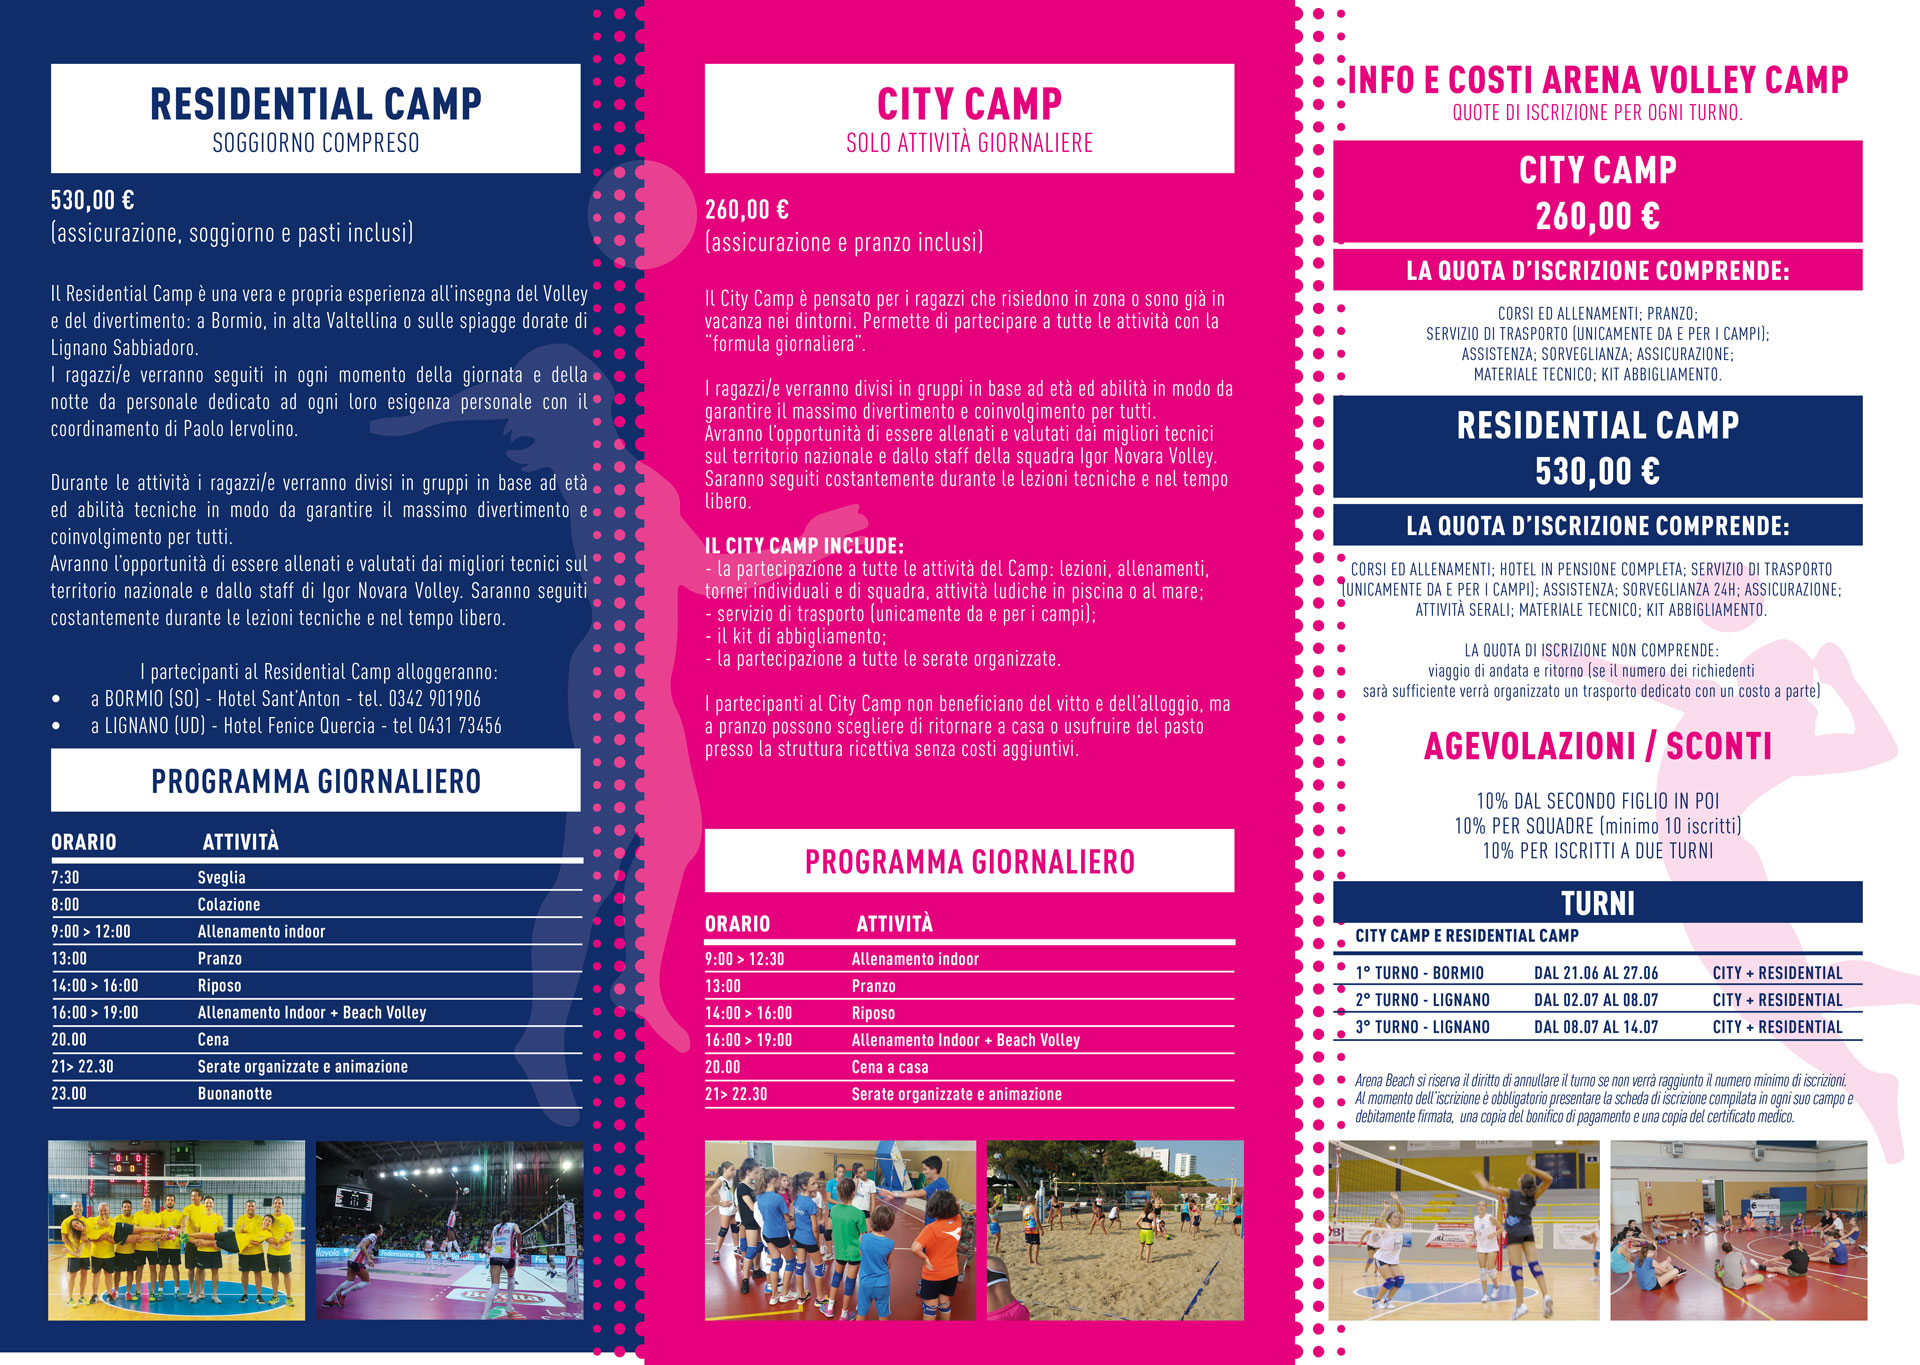 arena volley camp 2019 flyer retro